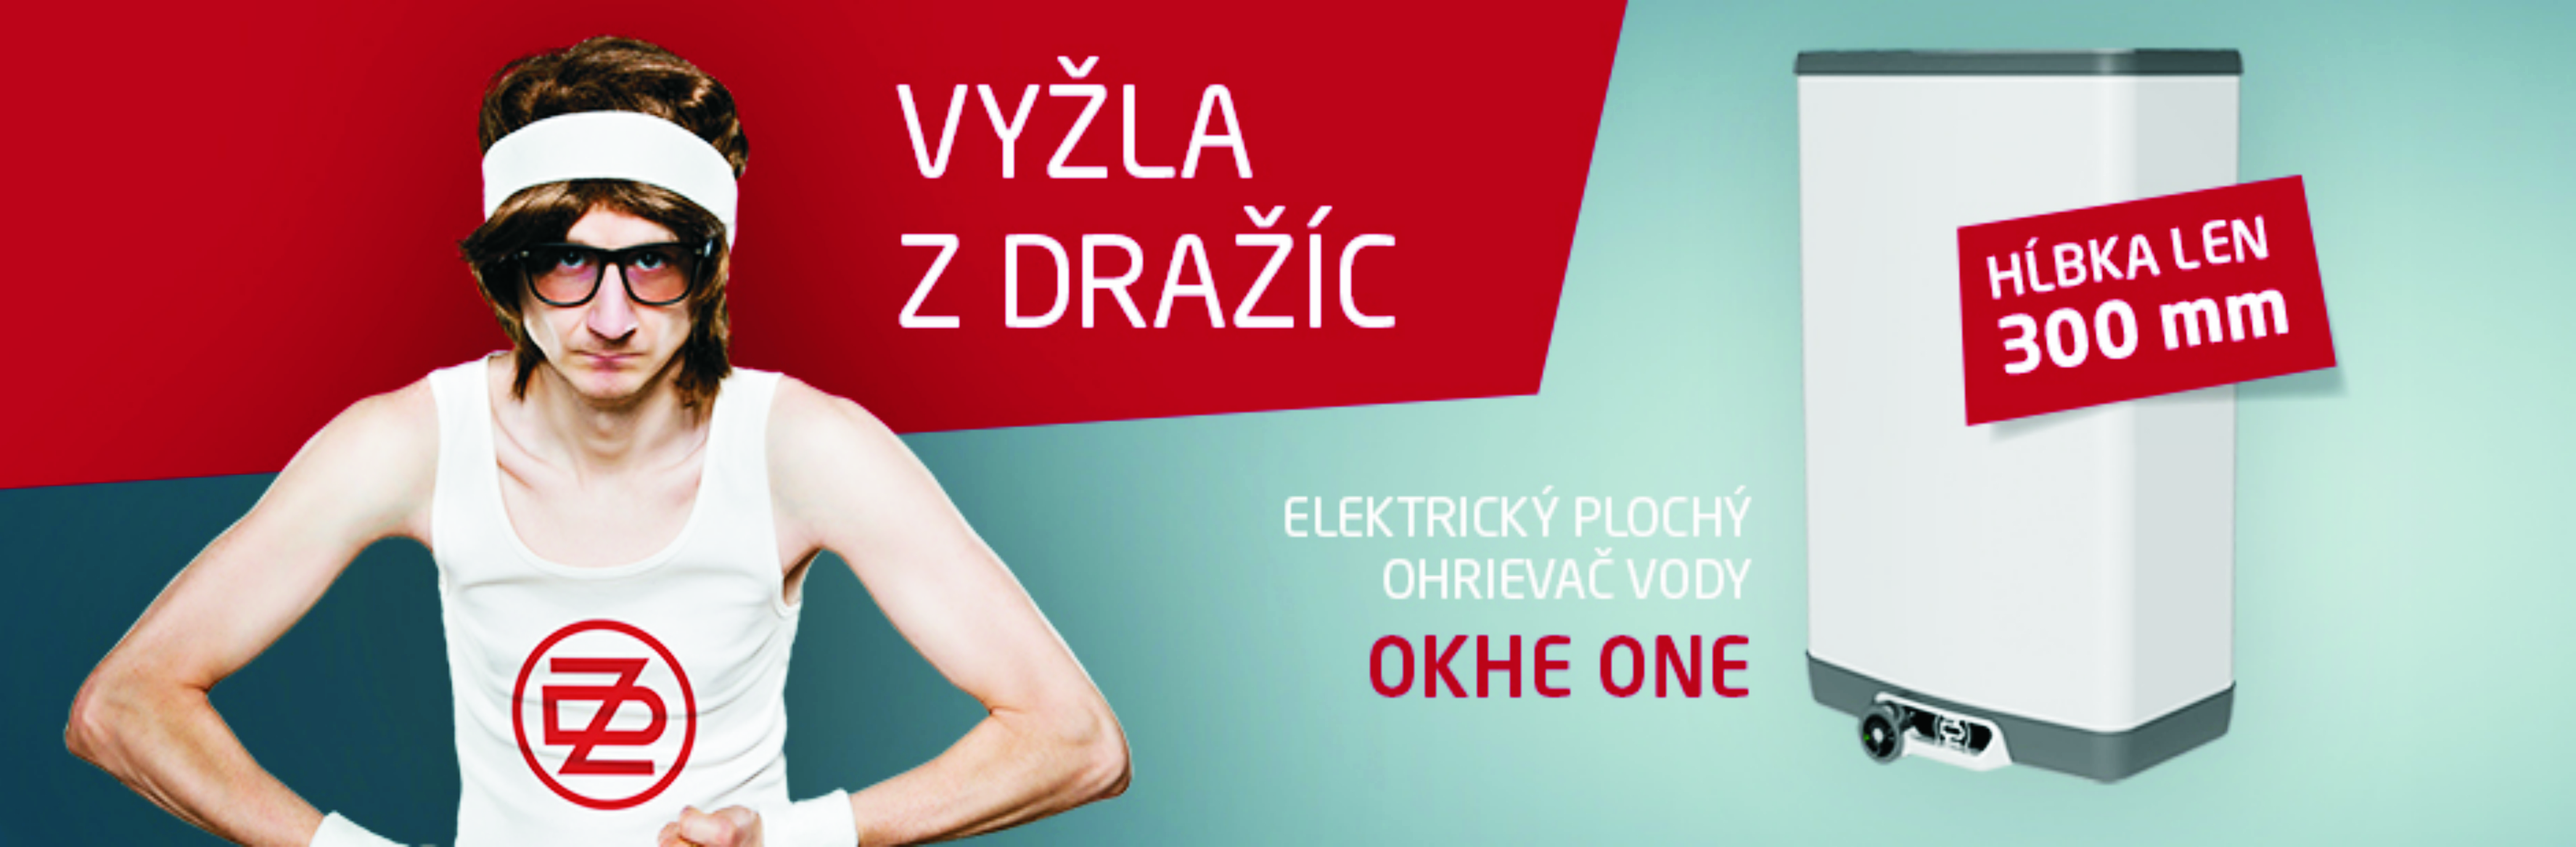 DRAŽICE OKHE ONE